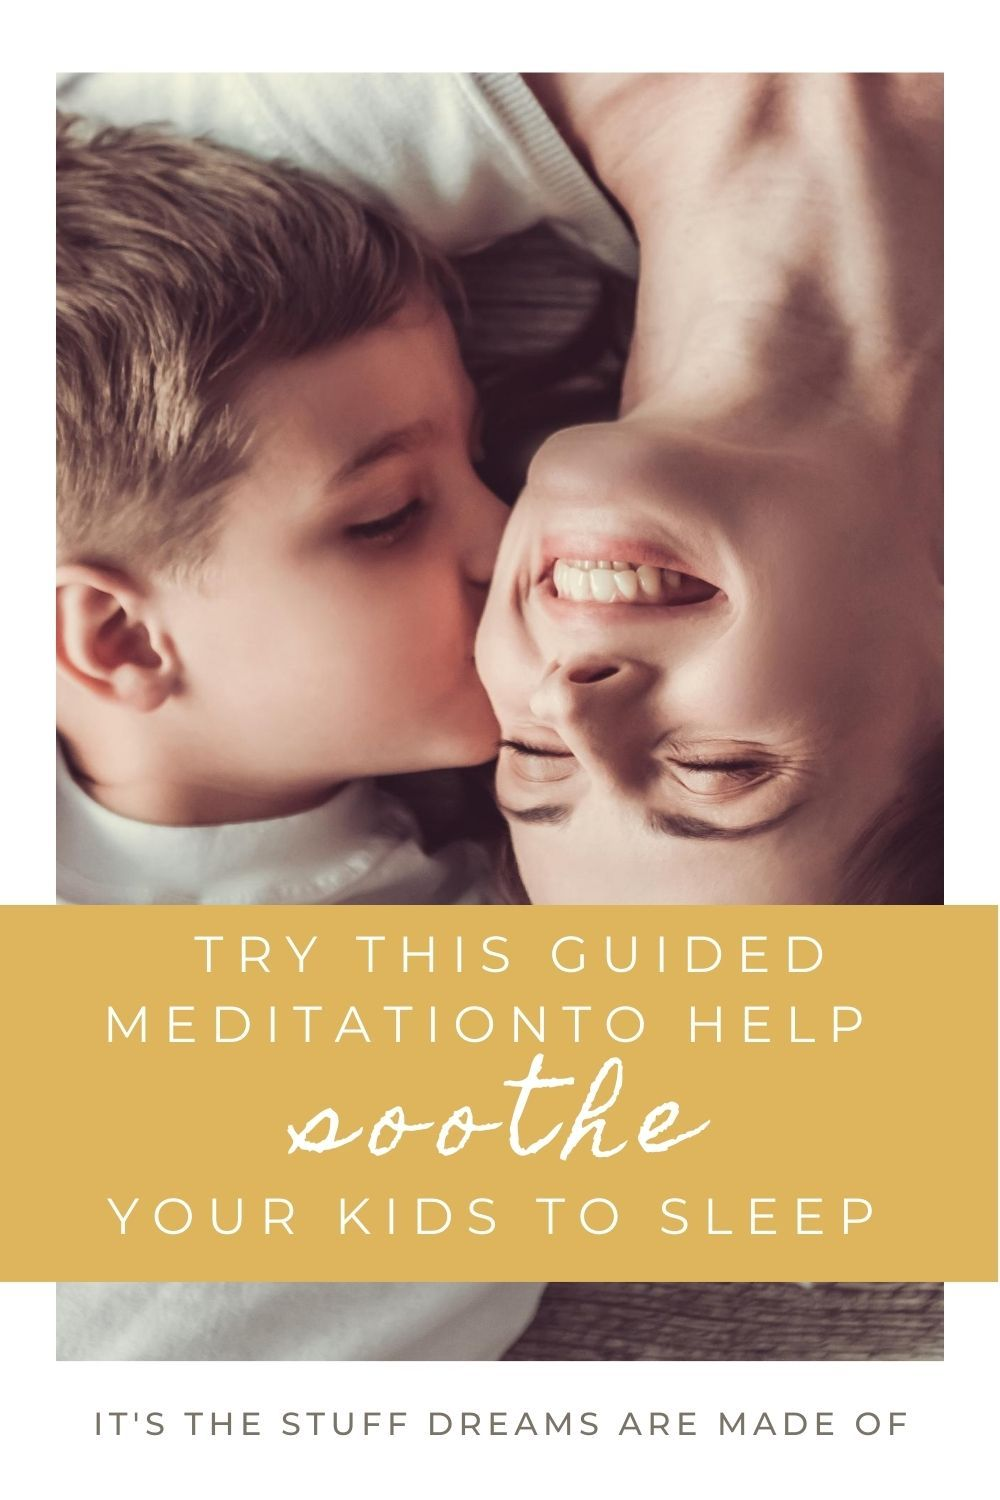 Soothe Your Kids to Sleep With This Guided Meditation in